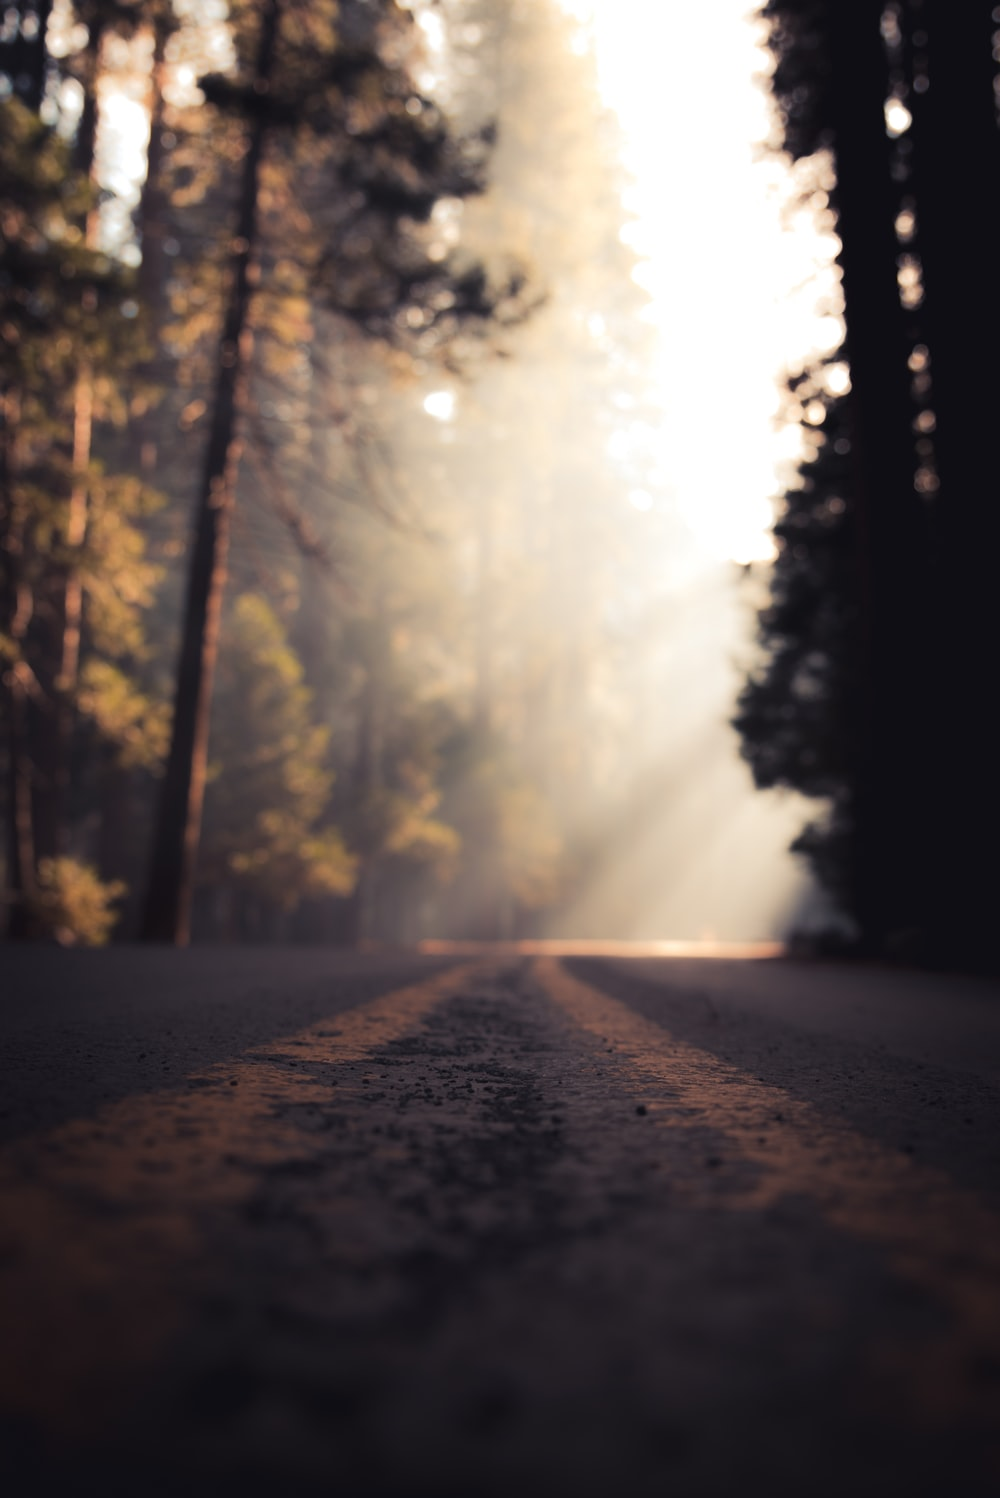 low angle view of road in mist